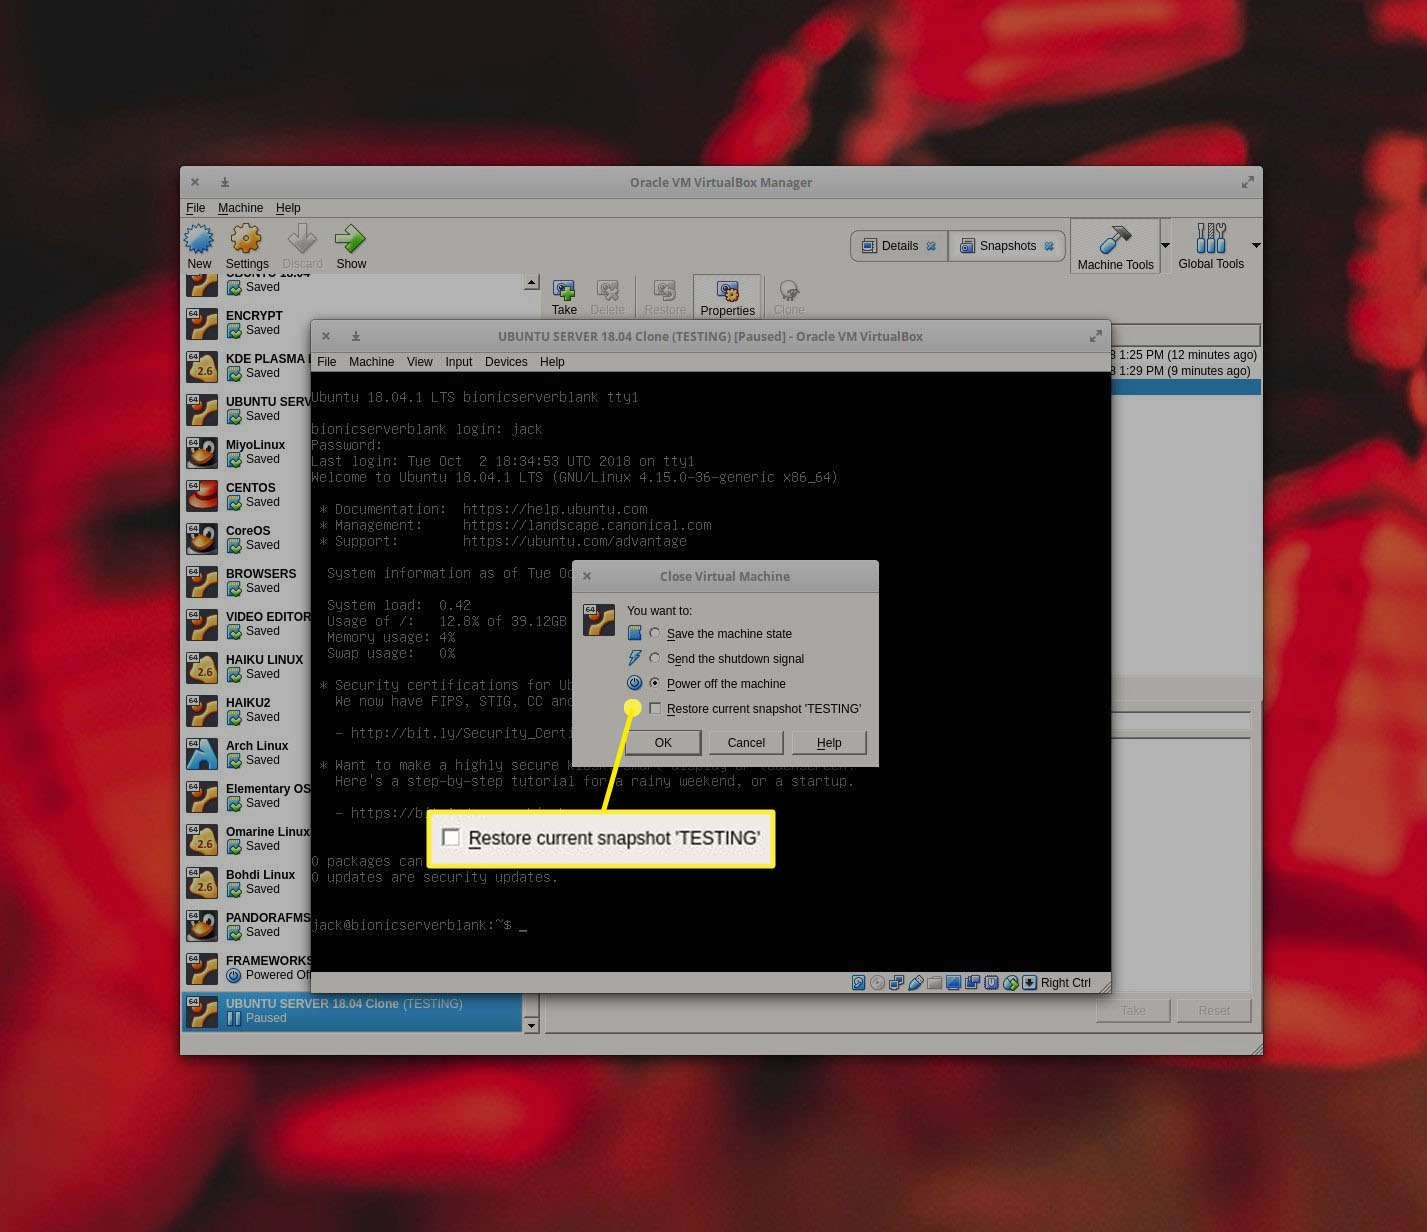 It is also possible to restore a snapshot from the Close dialog.